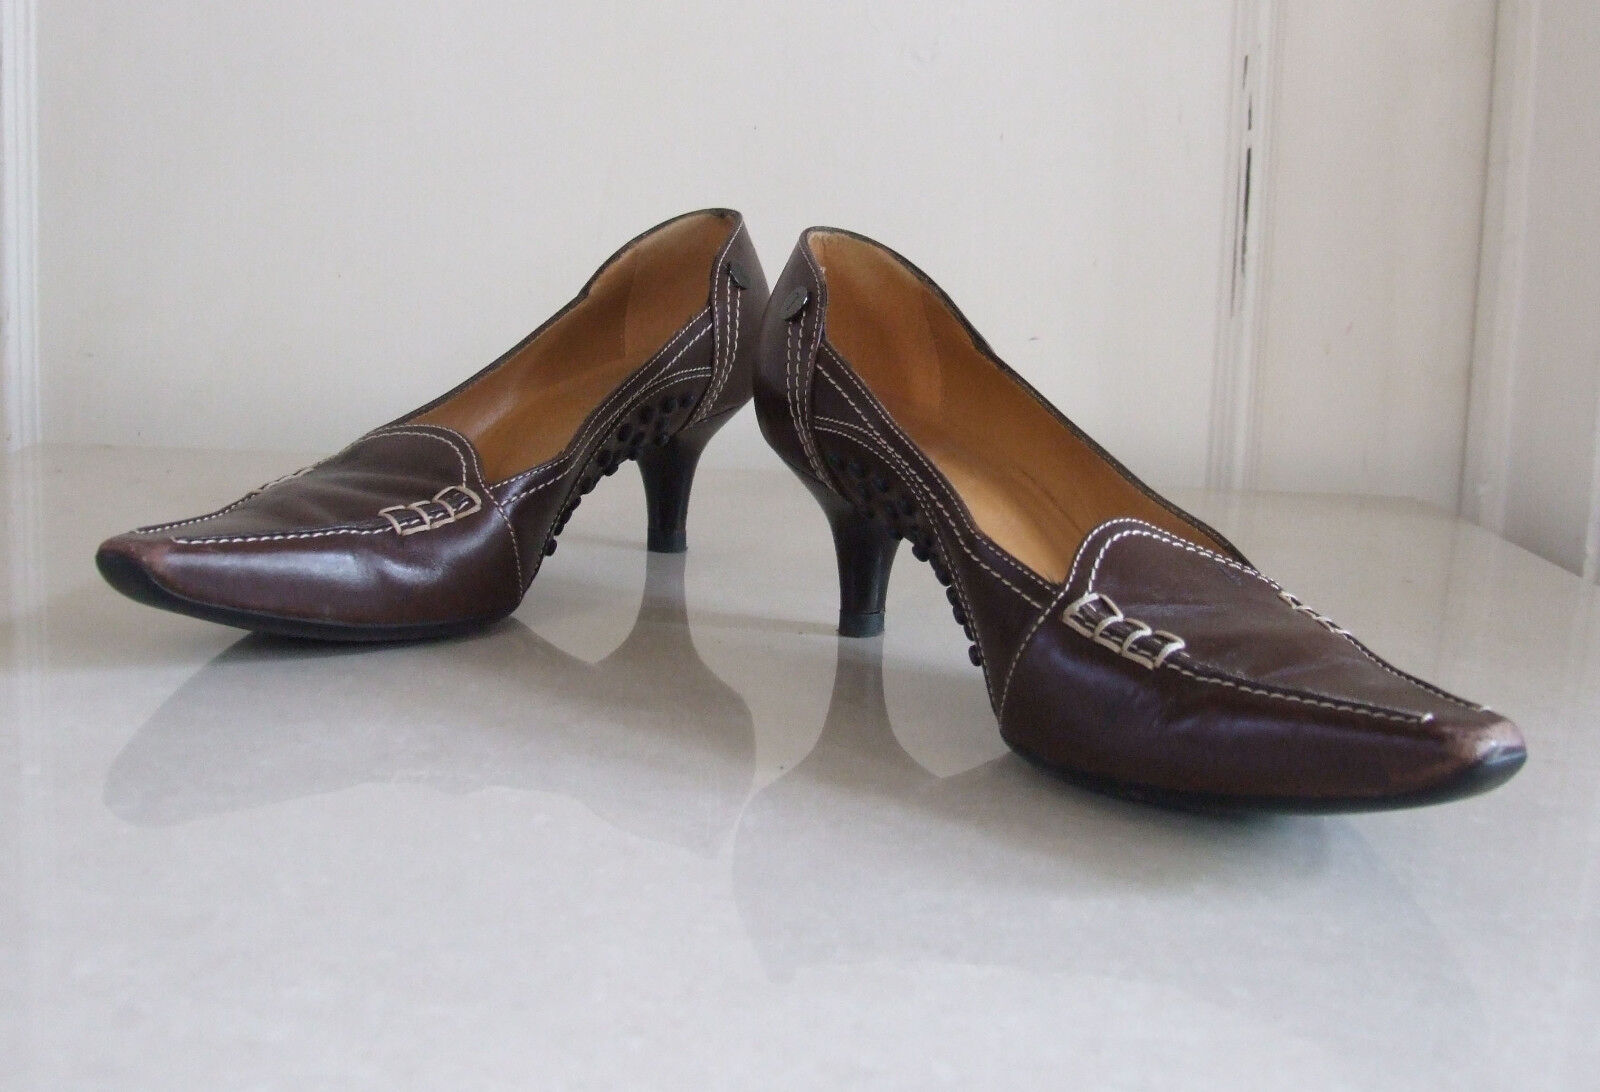 Designer Tods Beautiful Classic Brown Leather Court Slip-On Shoes Mules EU37 UK4